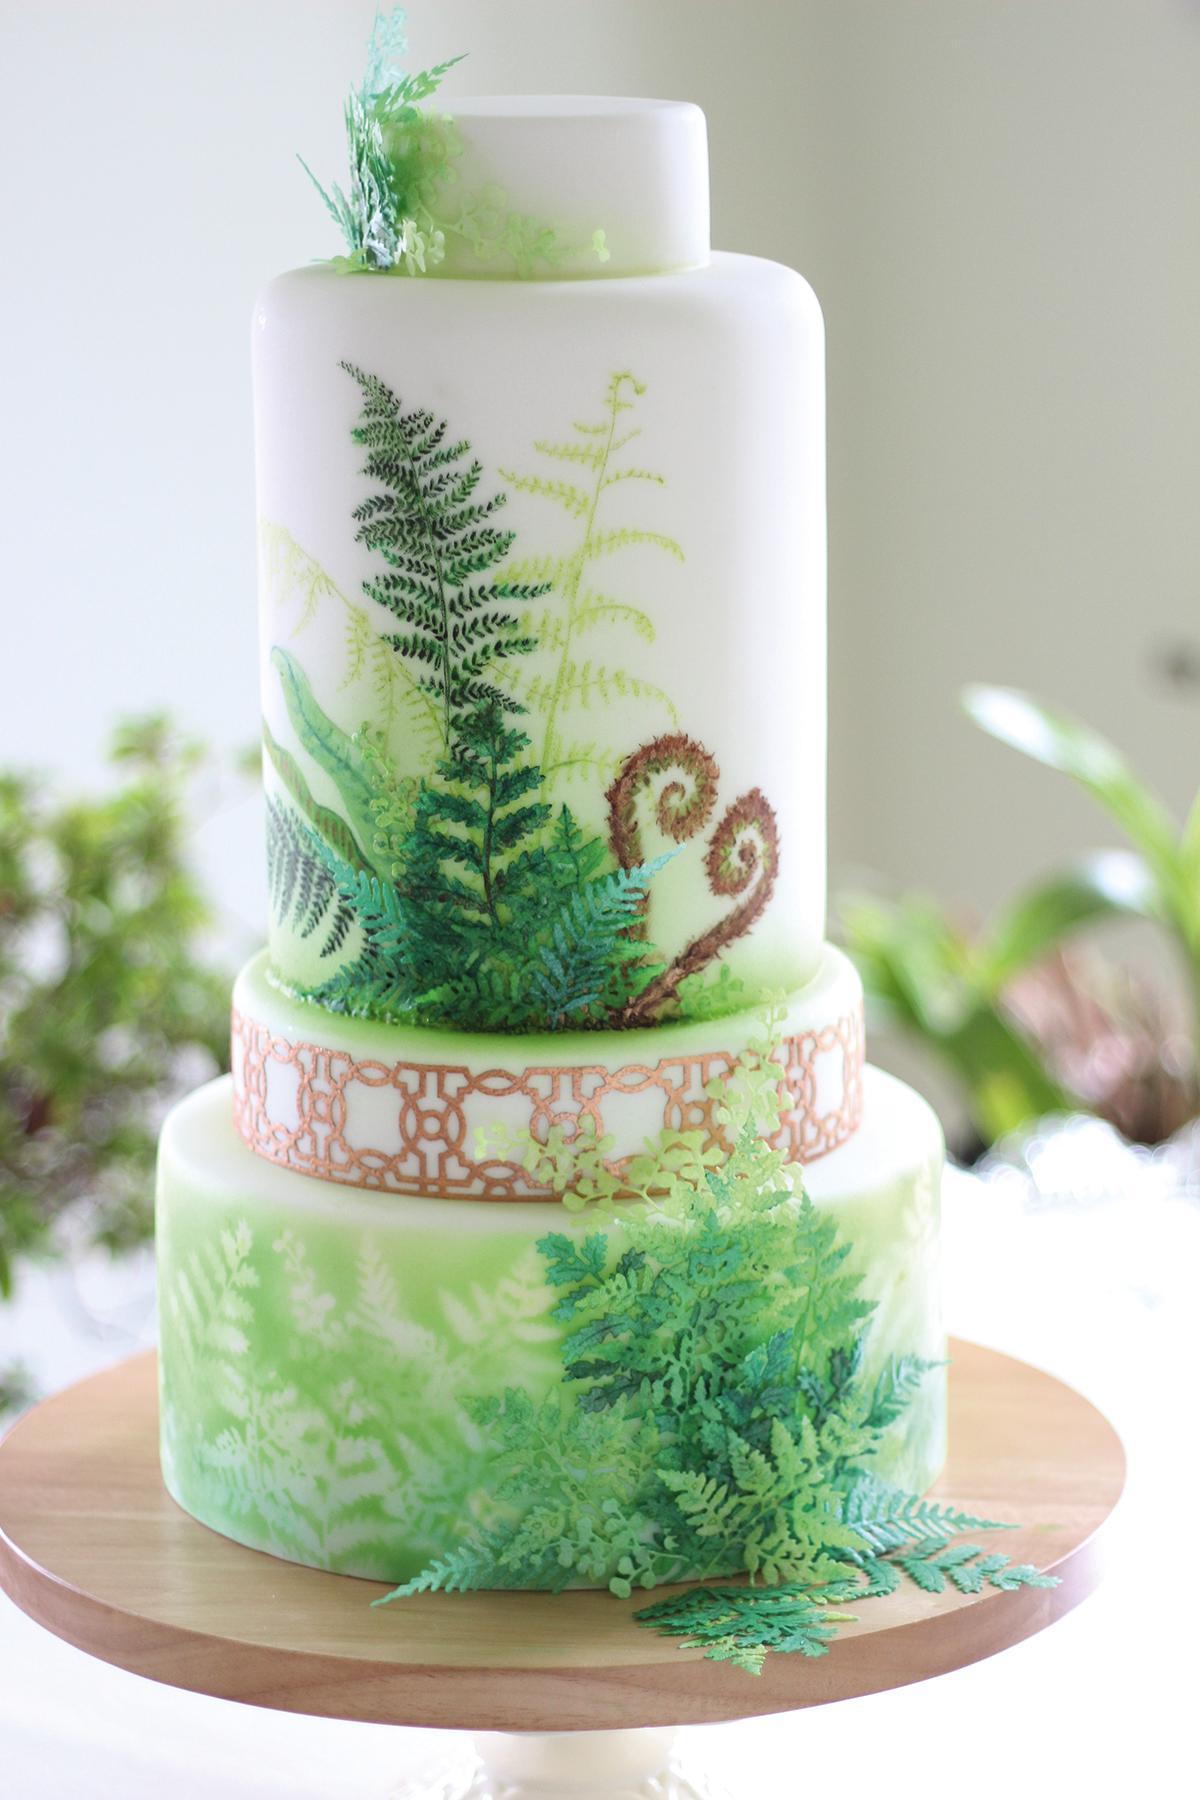 lindy-smith-fern-cake-for-botanical-wedding-shoot - Love Our Wedding